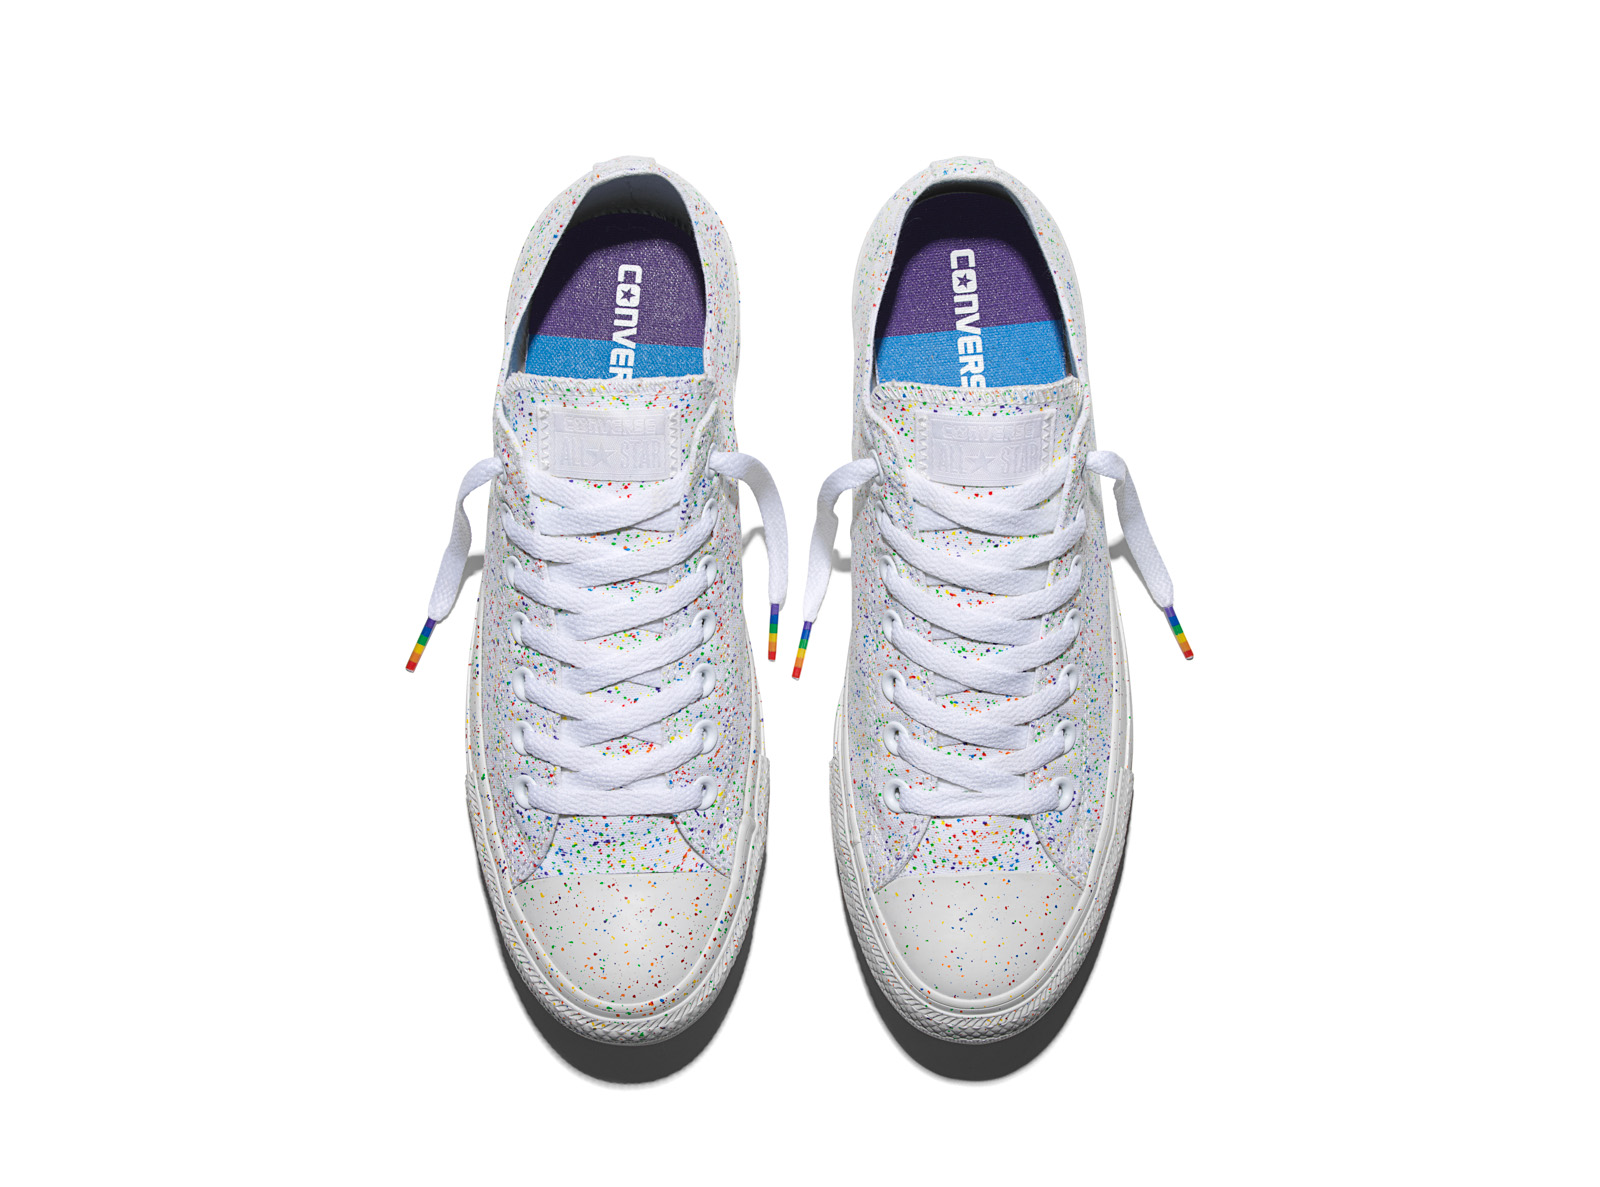 515205d3d0c3 The New Rainbow design Chuck Taylor sneakers. 11Jun 2016